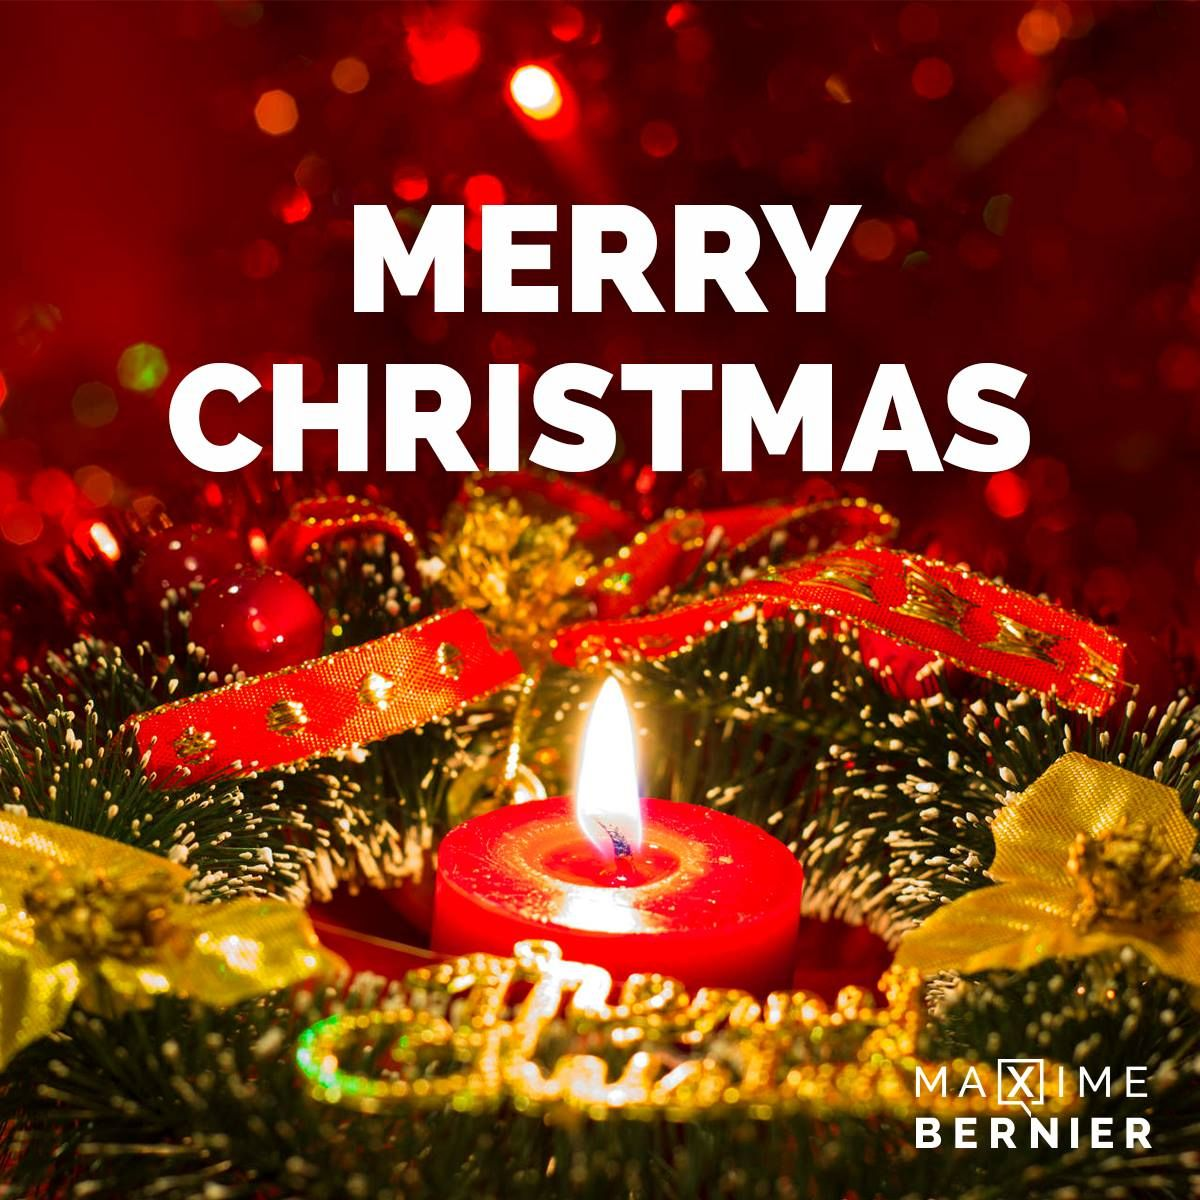 Maxime Bernier On Twitter May The Joy Of Christmas Fill Your Home